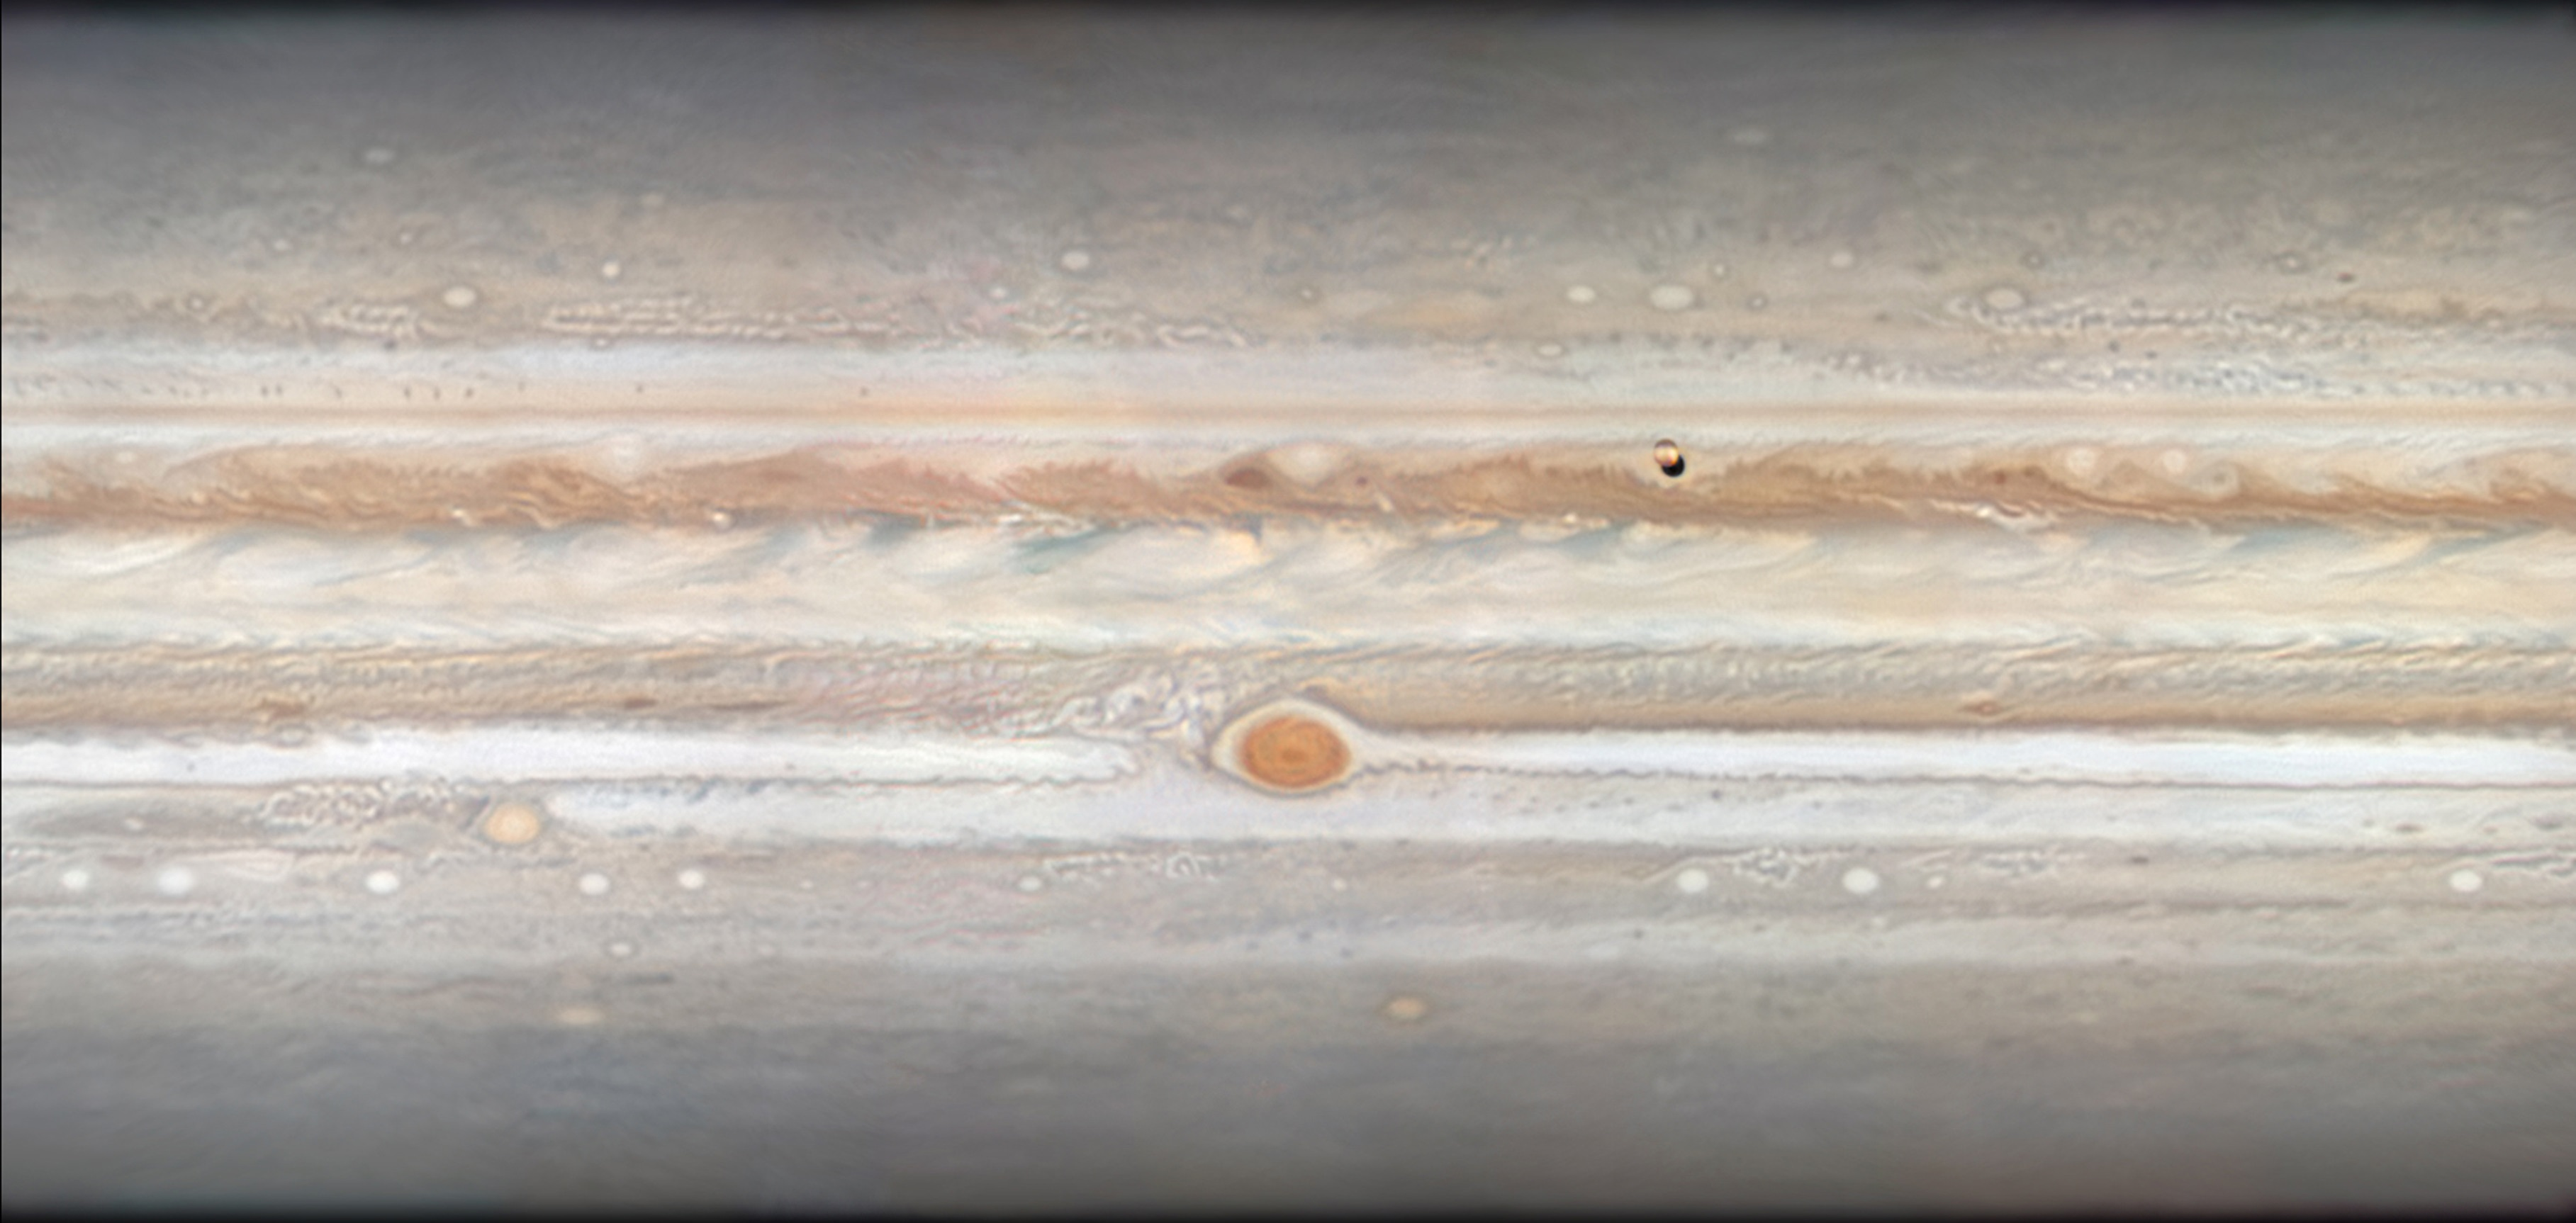 Insight Investment Astronomy Photographer of the Year 2019: Planets, Comets and Asteroids - Jupiter Unravelled © Damian Peach